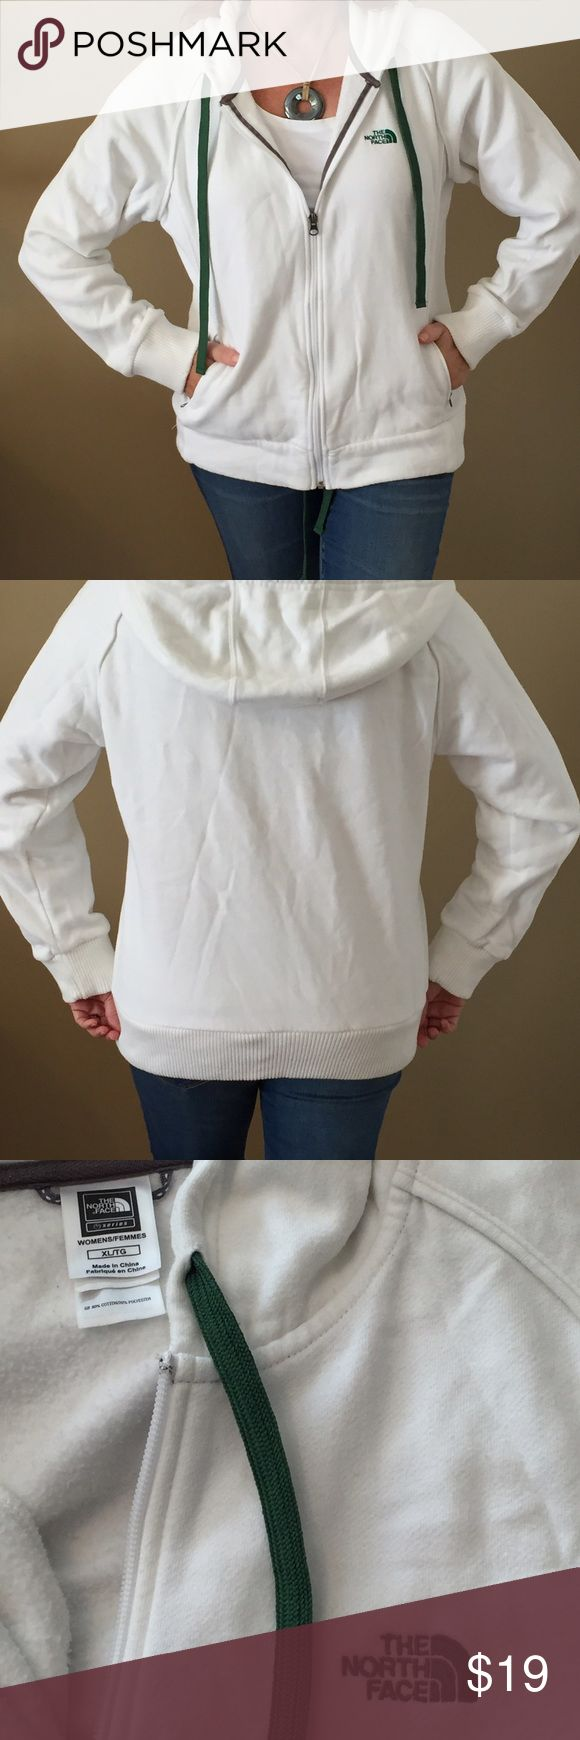 White North Face hoodie You can never really have too many hoodies! This cozy white North Face Jacket has zippered side pockets and ribbed cuffs. It's an extra large, but if you like your jackets roomy then it's more like a medium- large. Clean and in excellent condition North Face Jackets & Coats